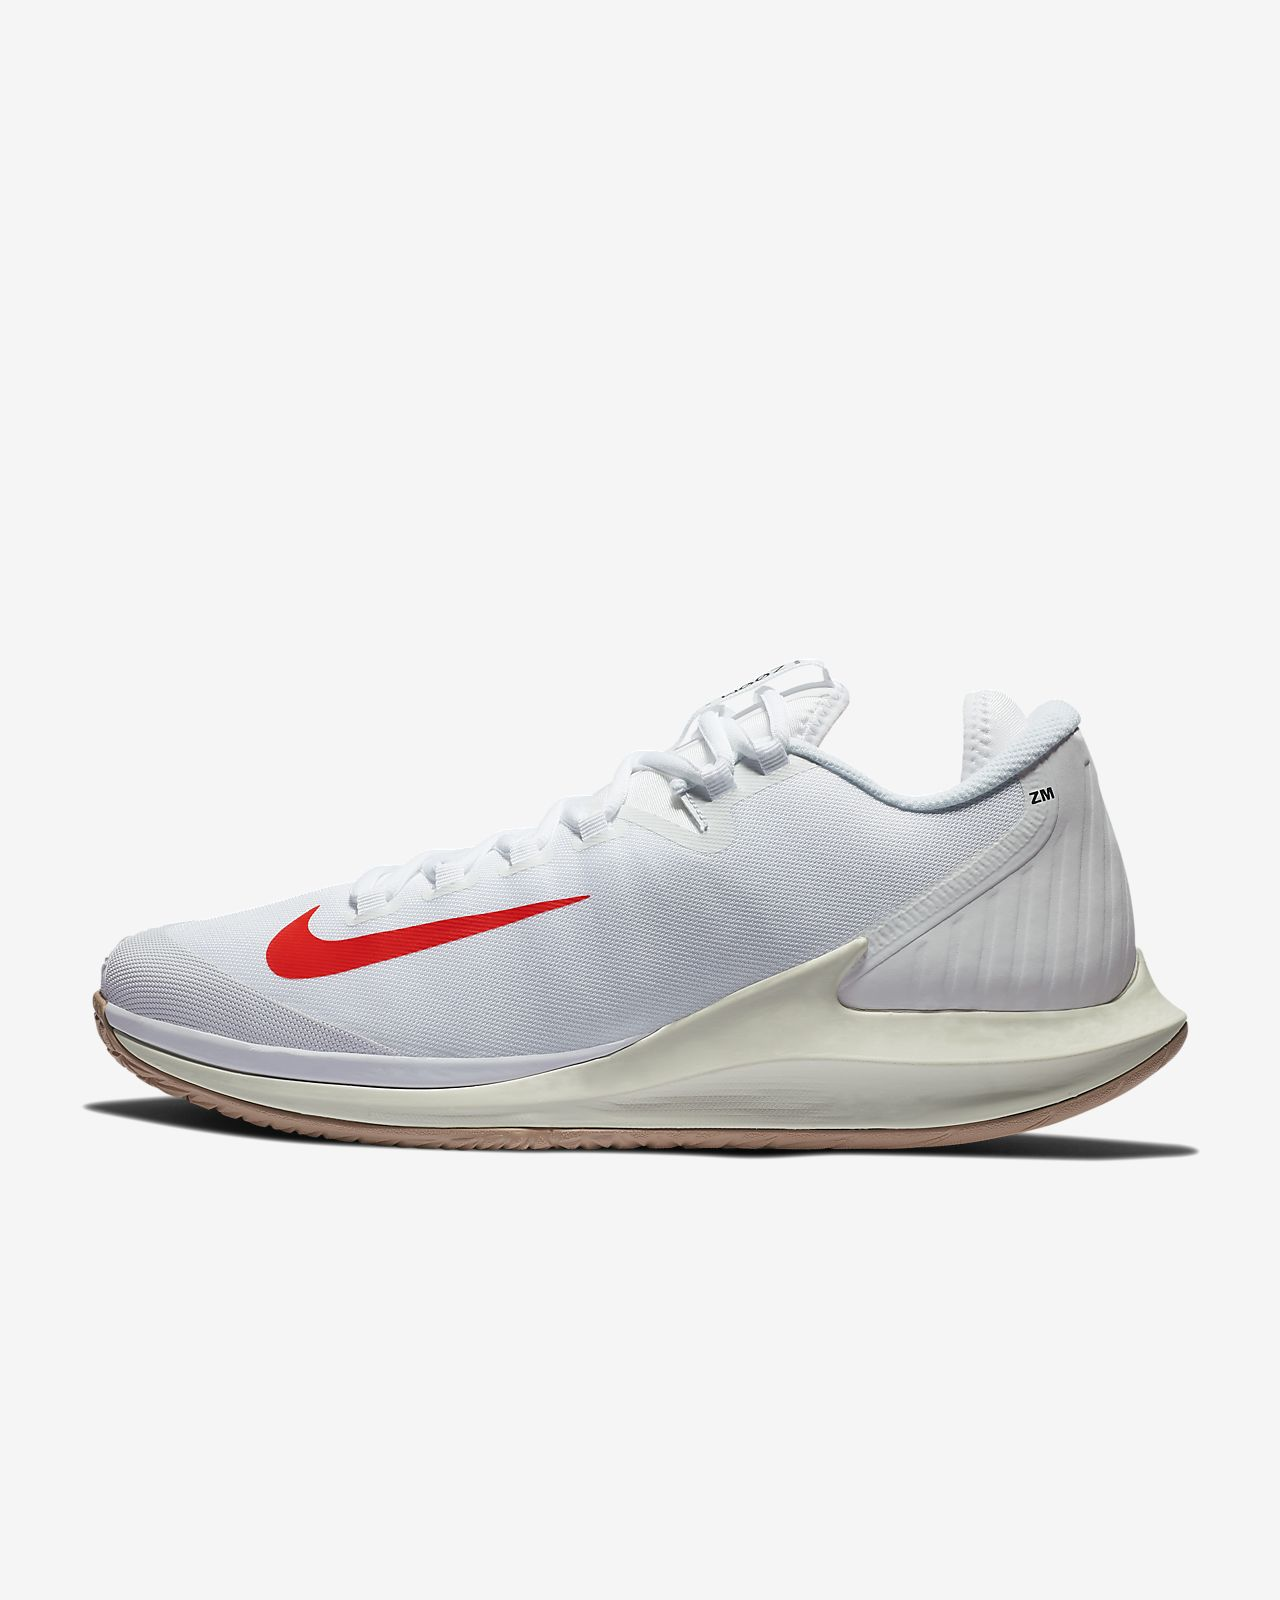 quality design bece6 ac272 ... NikeCourt Air Zoom Zero Mens Tennis Shoe